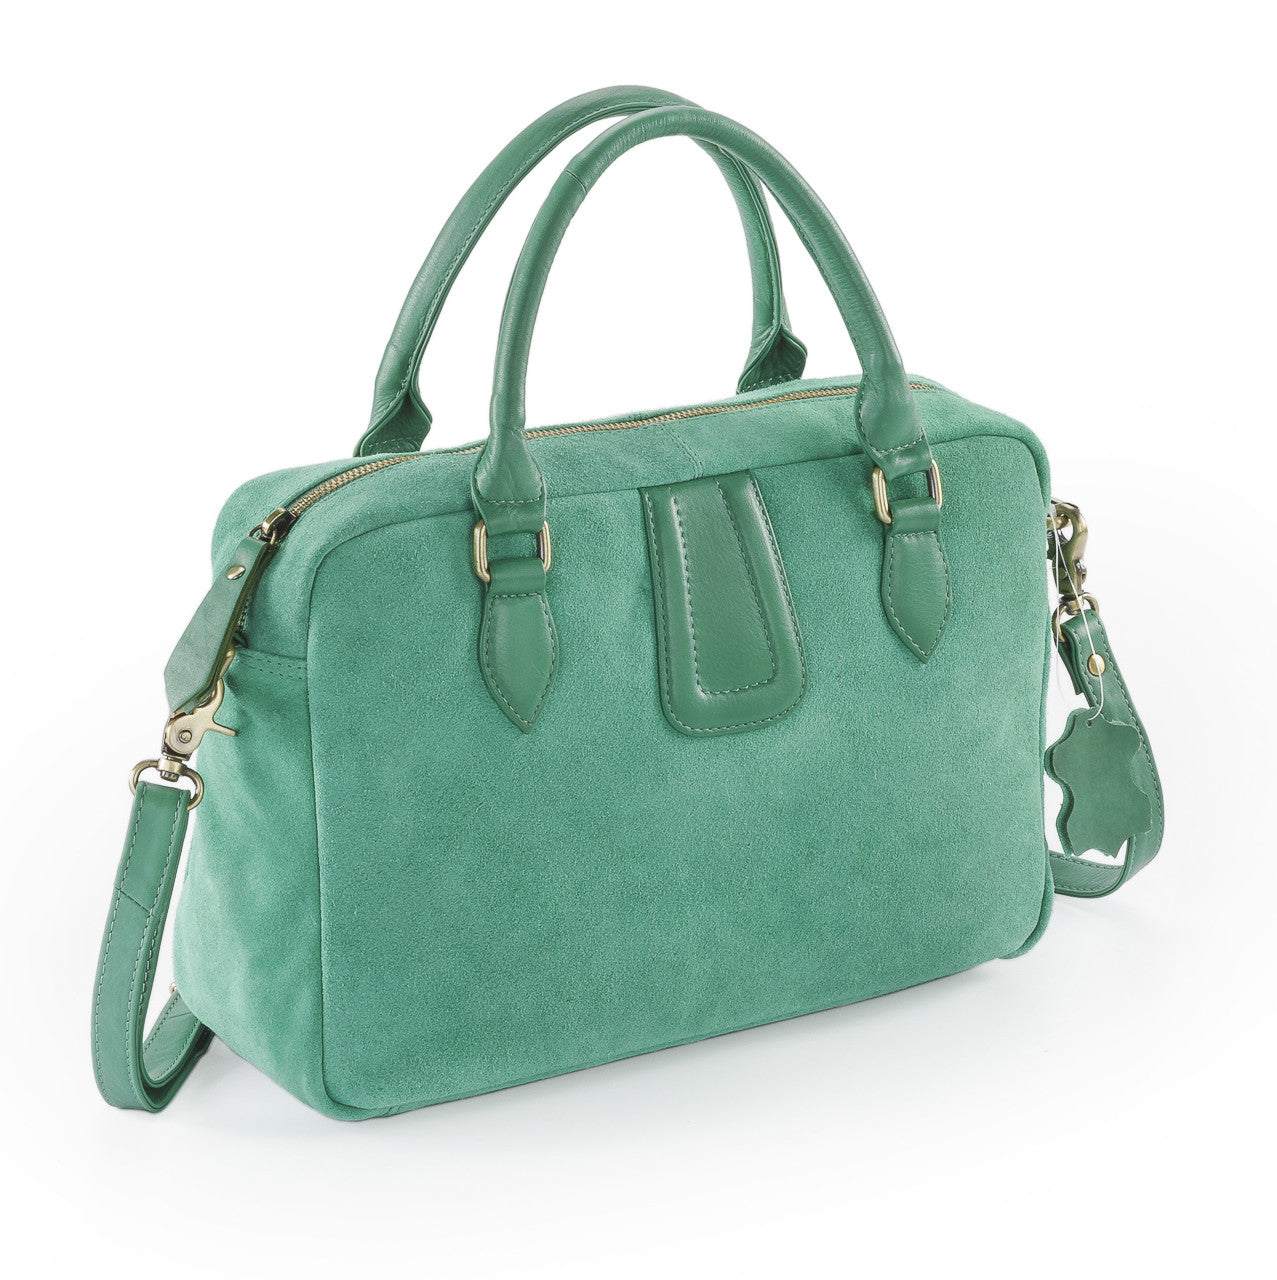 Rimor Silky suede ladies handbag  LB10 Green 7b3556fb4f38f